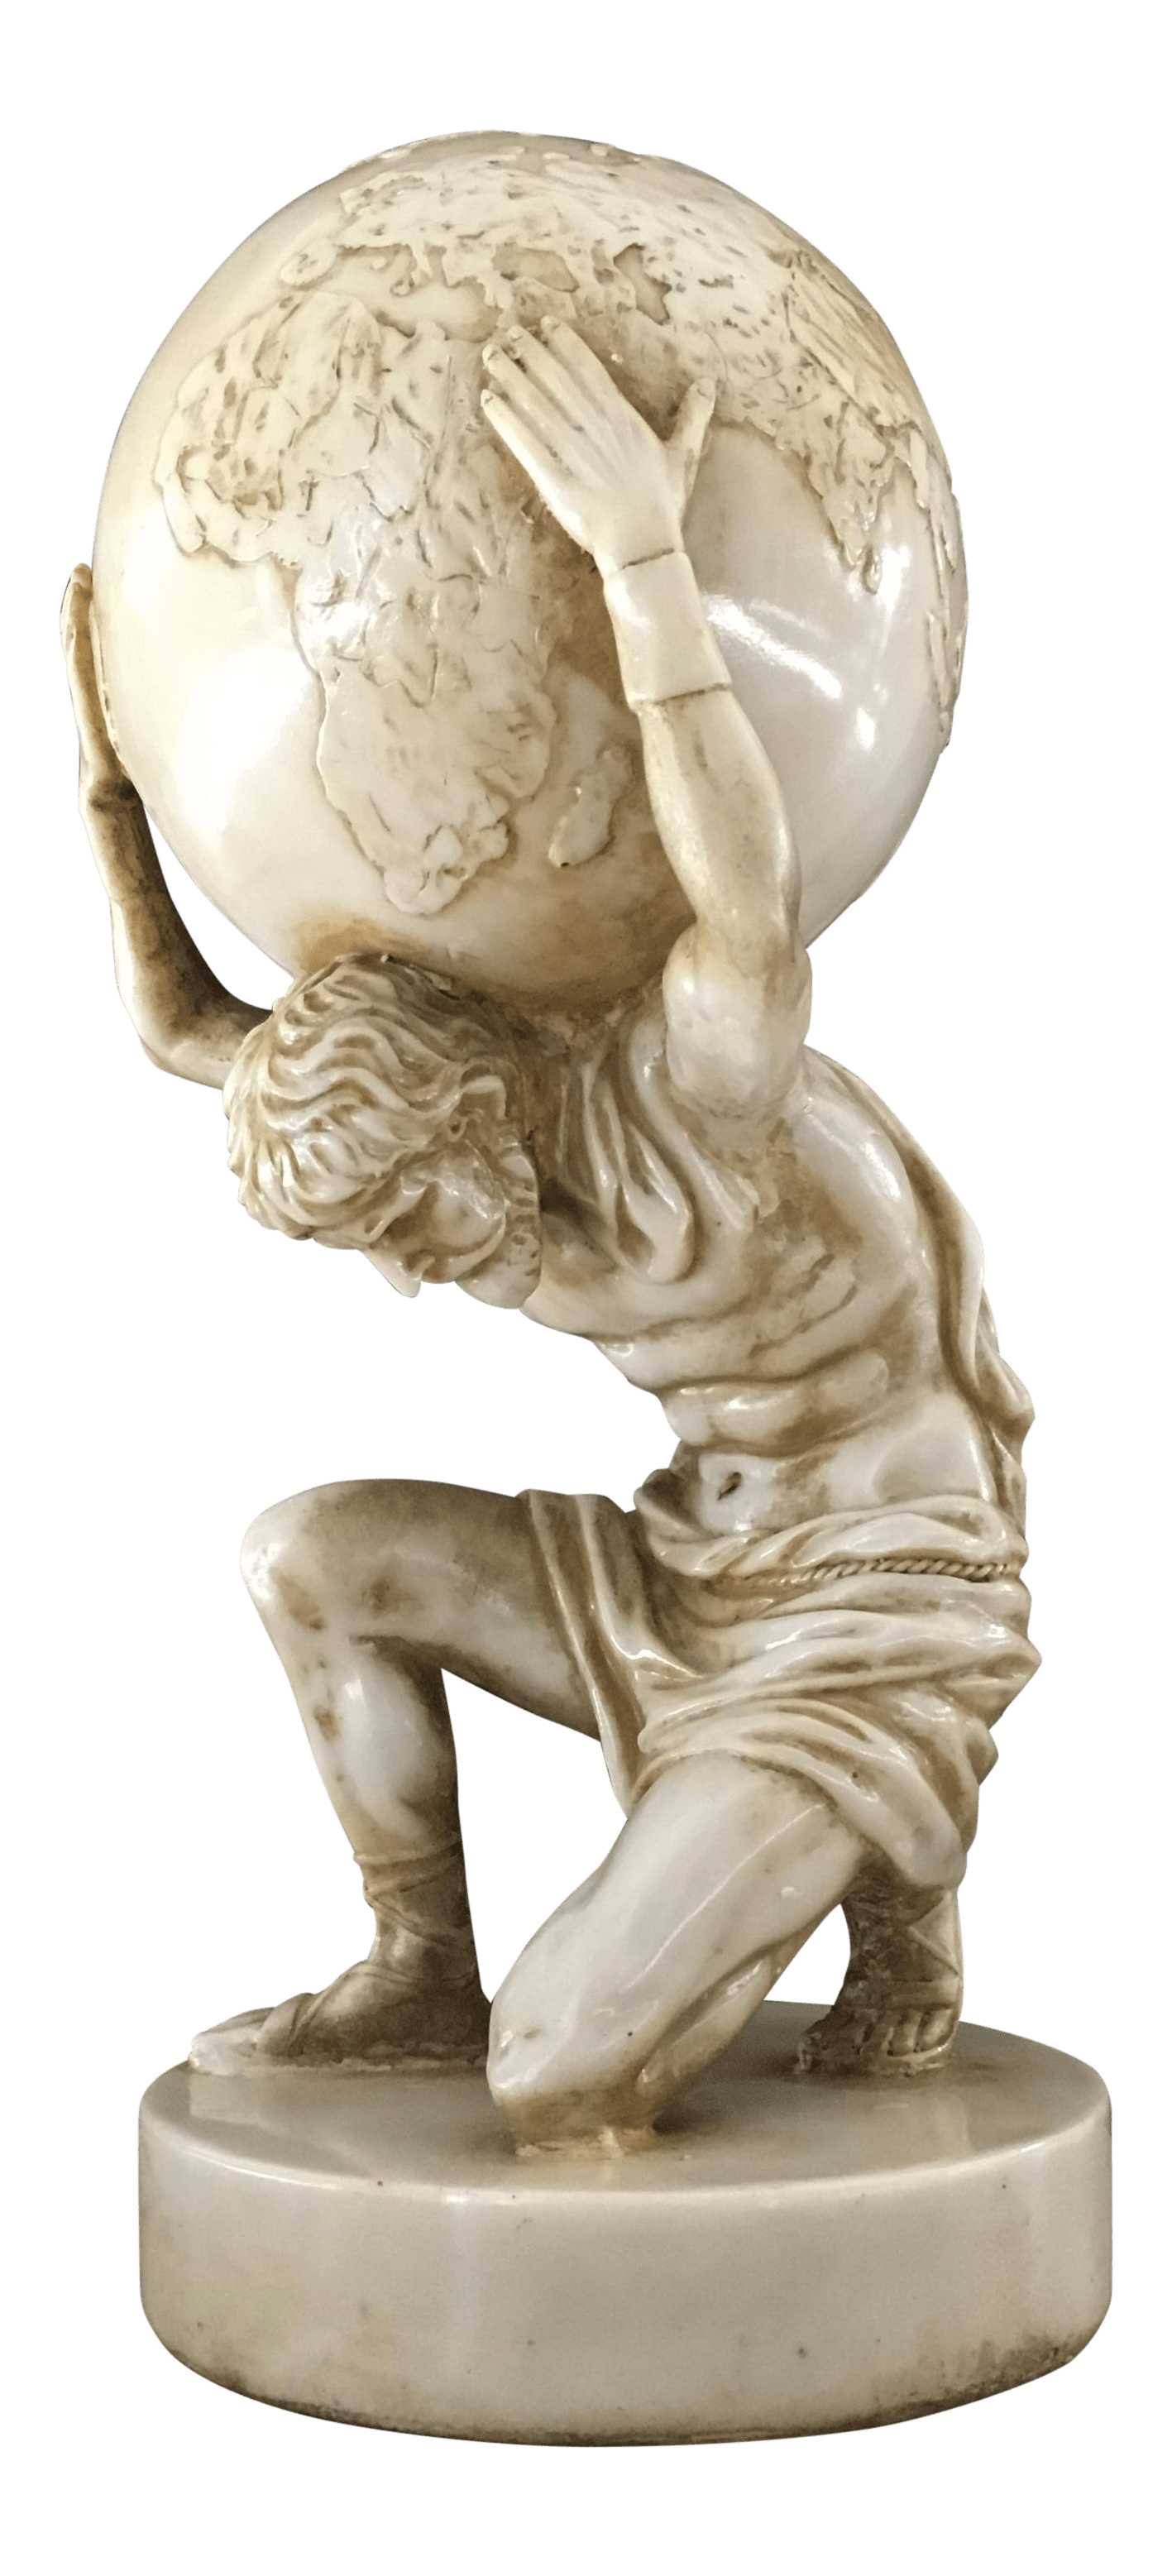 Atlas Statues For Sale Vintage Greek Titan Atlas Sculpture Chairish